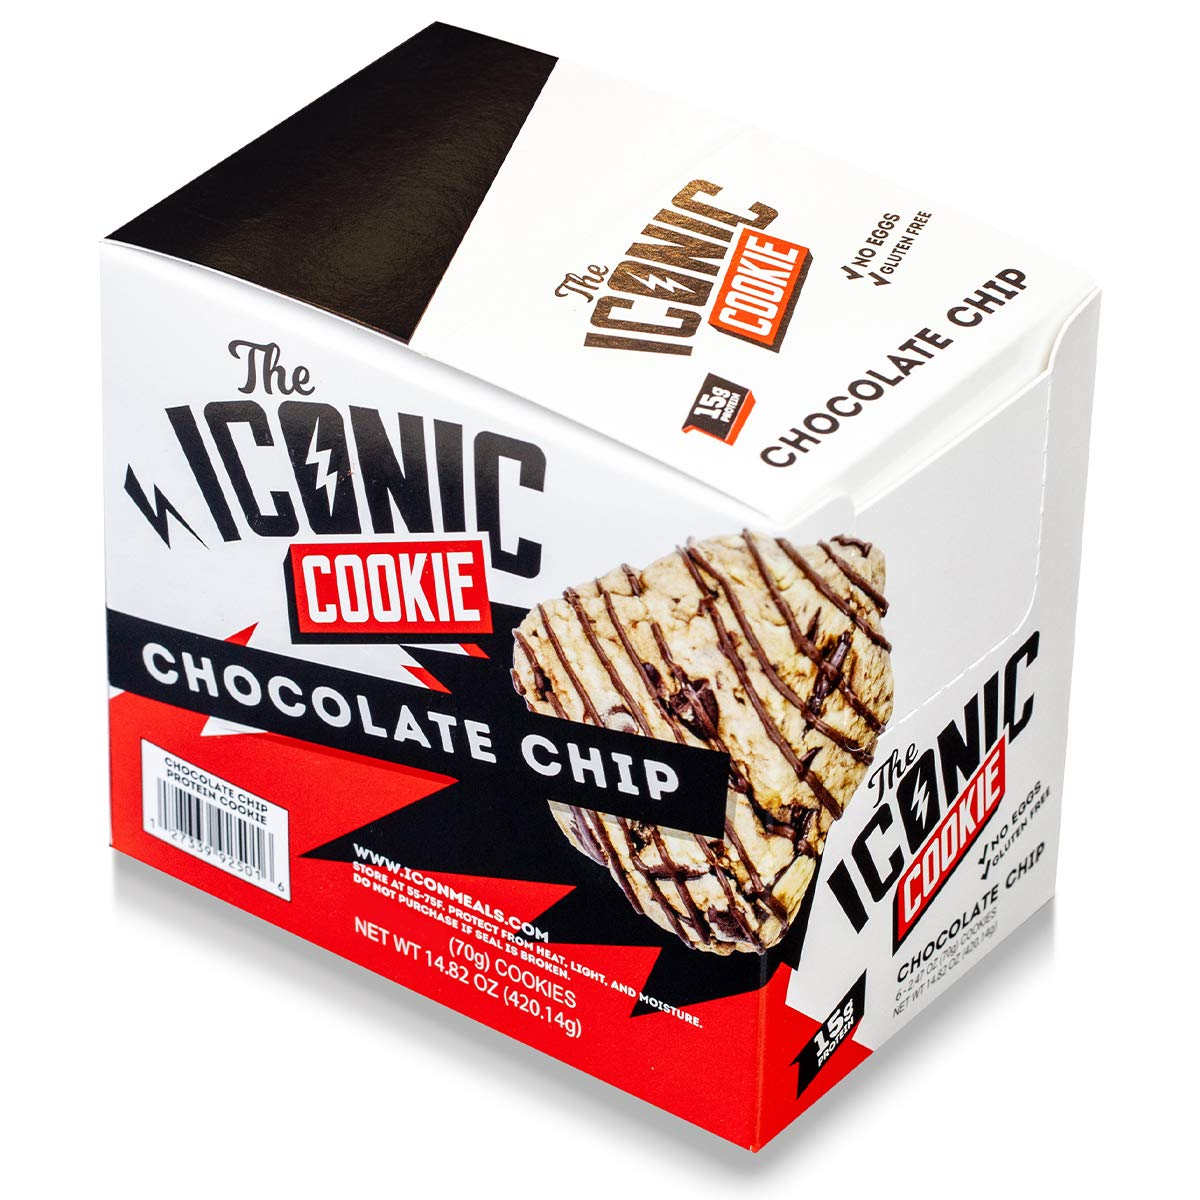 ICON Meals Protein Cookie | The Iconic Cookie | No Eggs, Gluten Free & 15g Protein | 6 Cookies (Chocolate Chip Cookie)